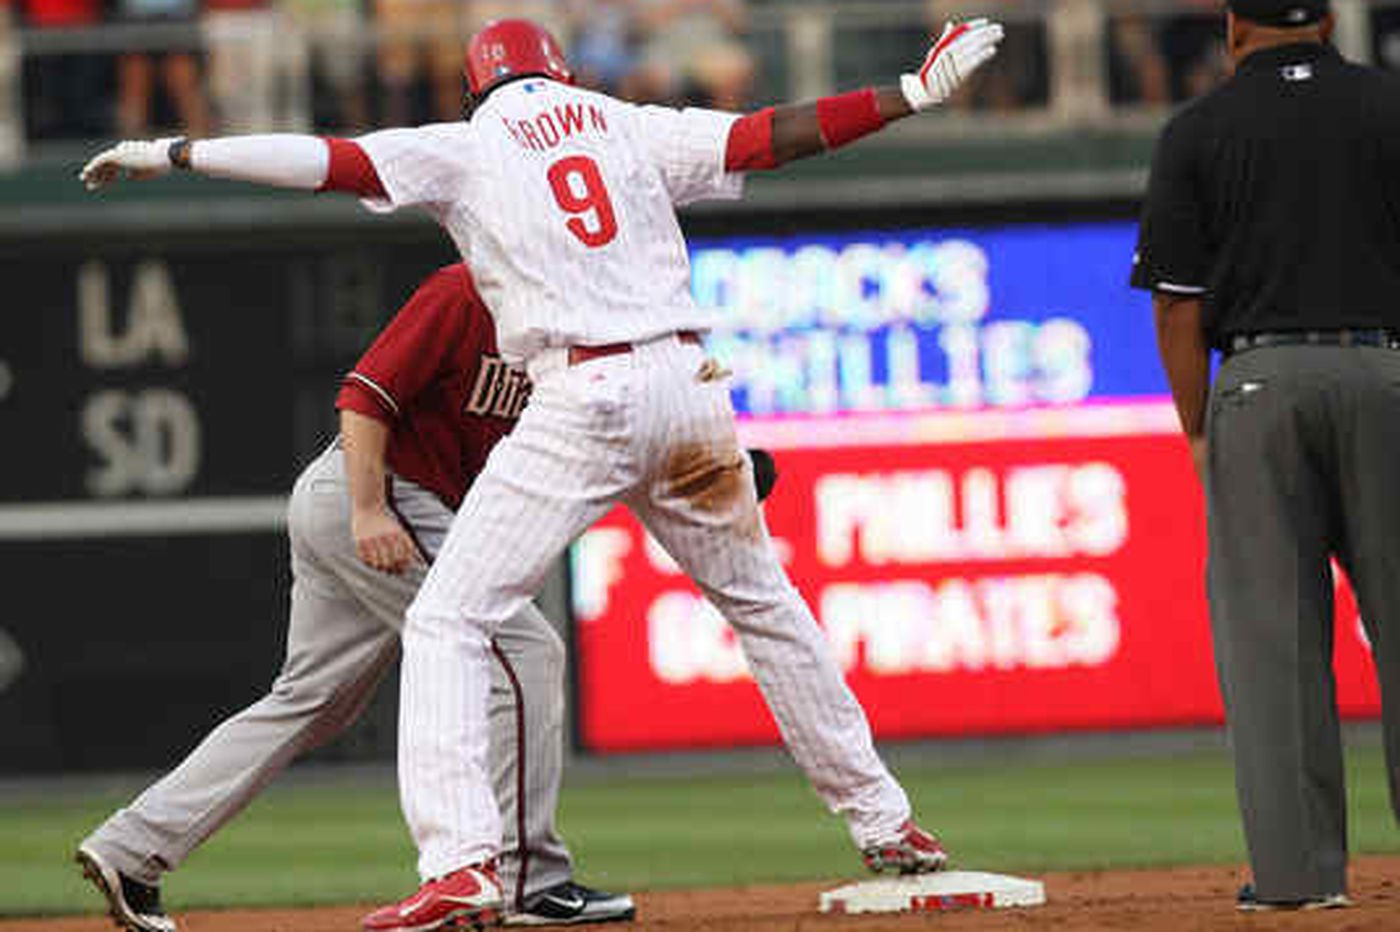 Domonic Brown lives up to hype in Phillies debut